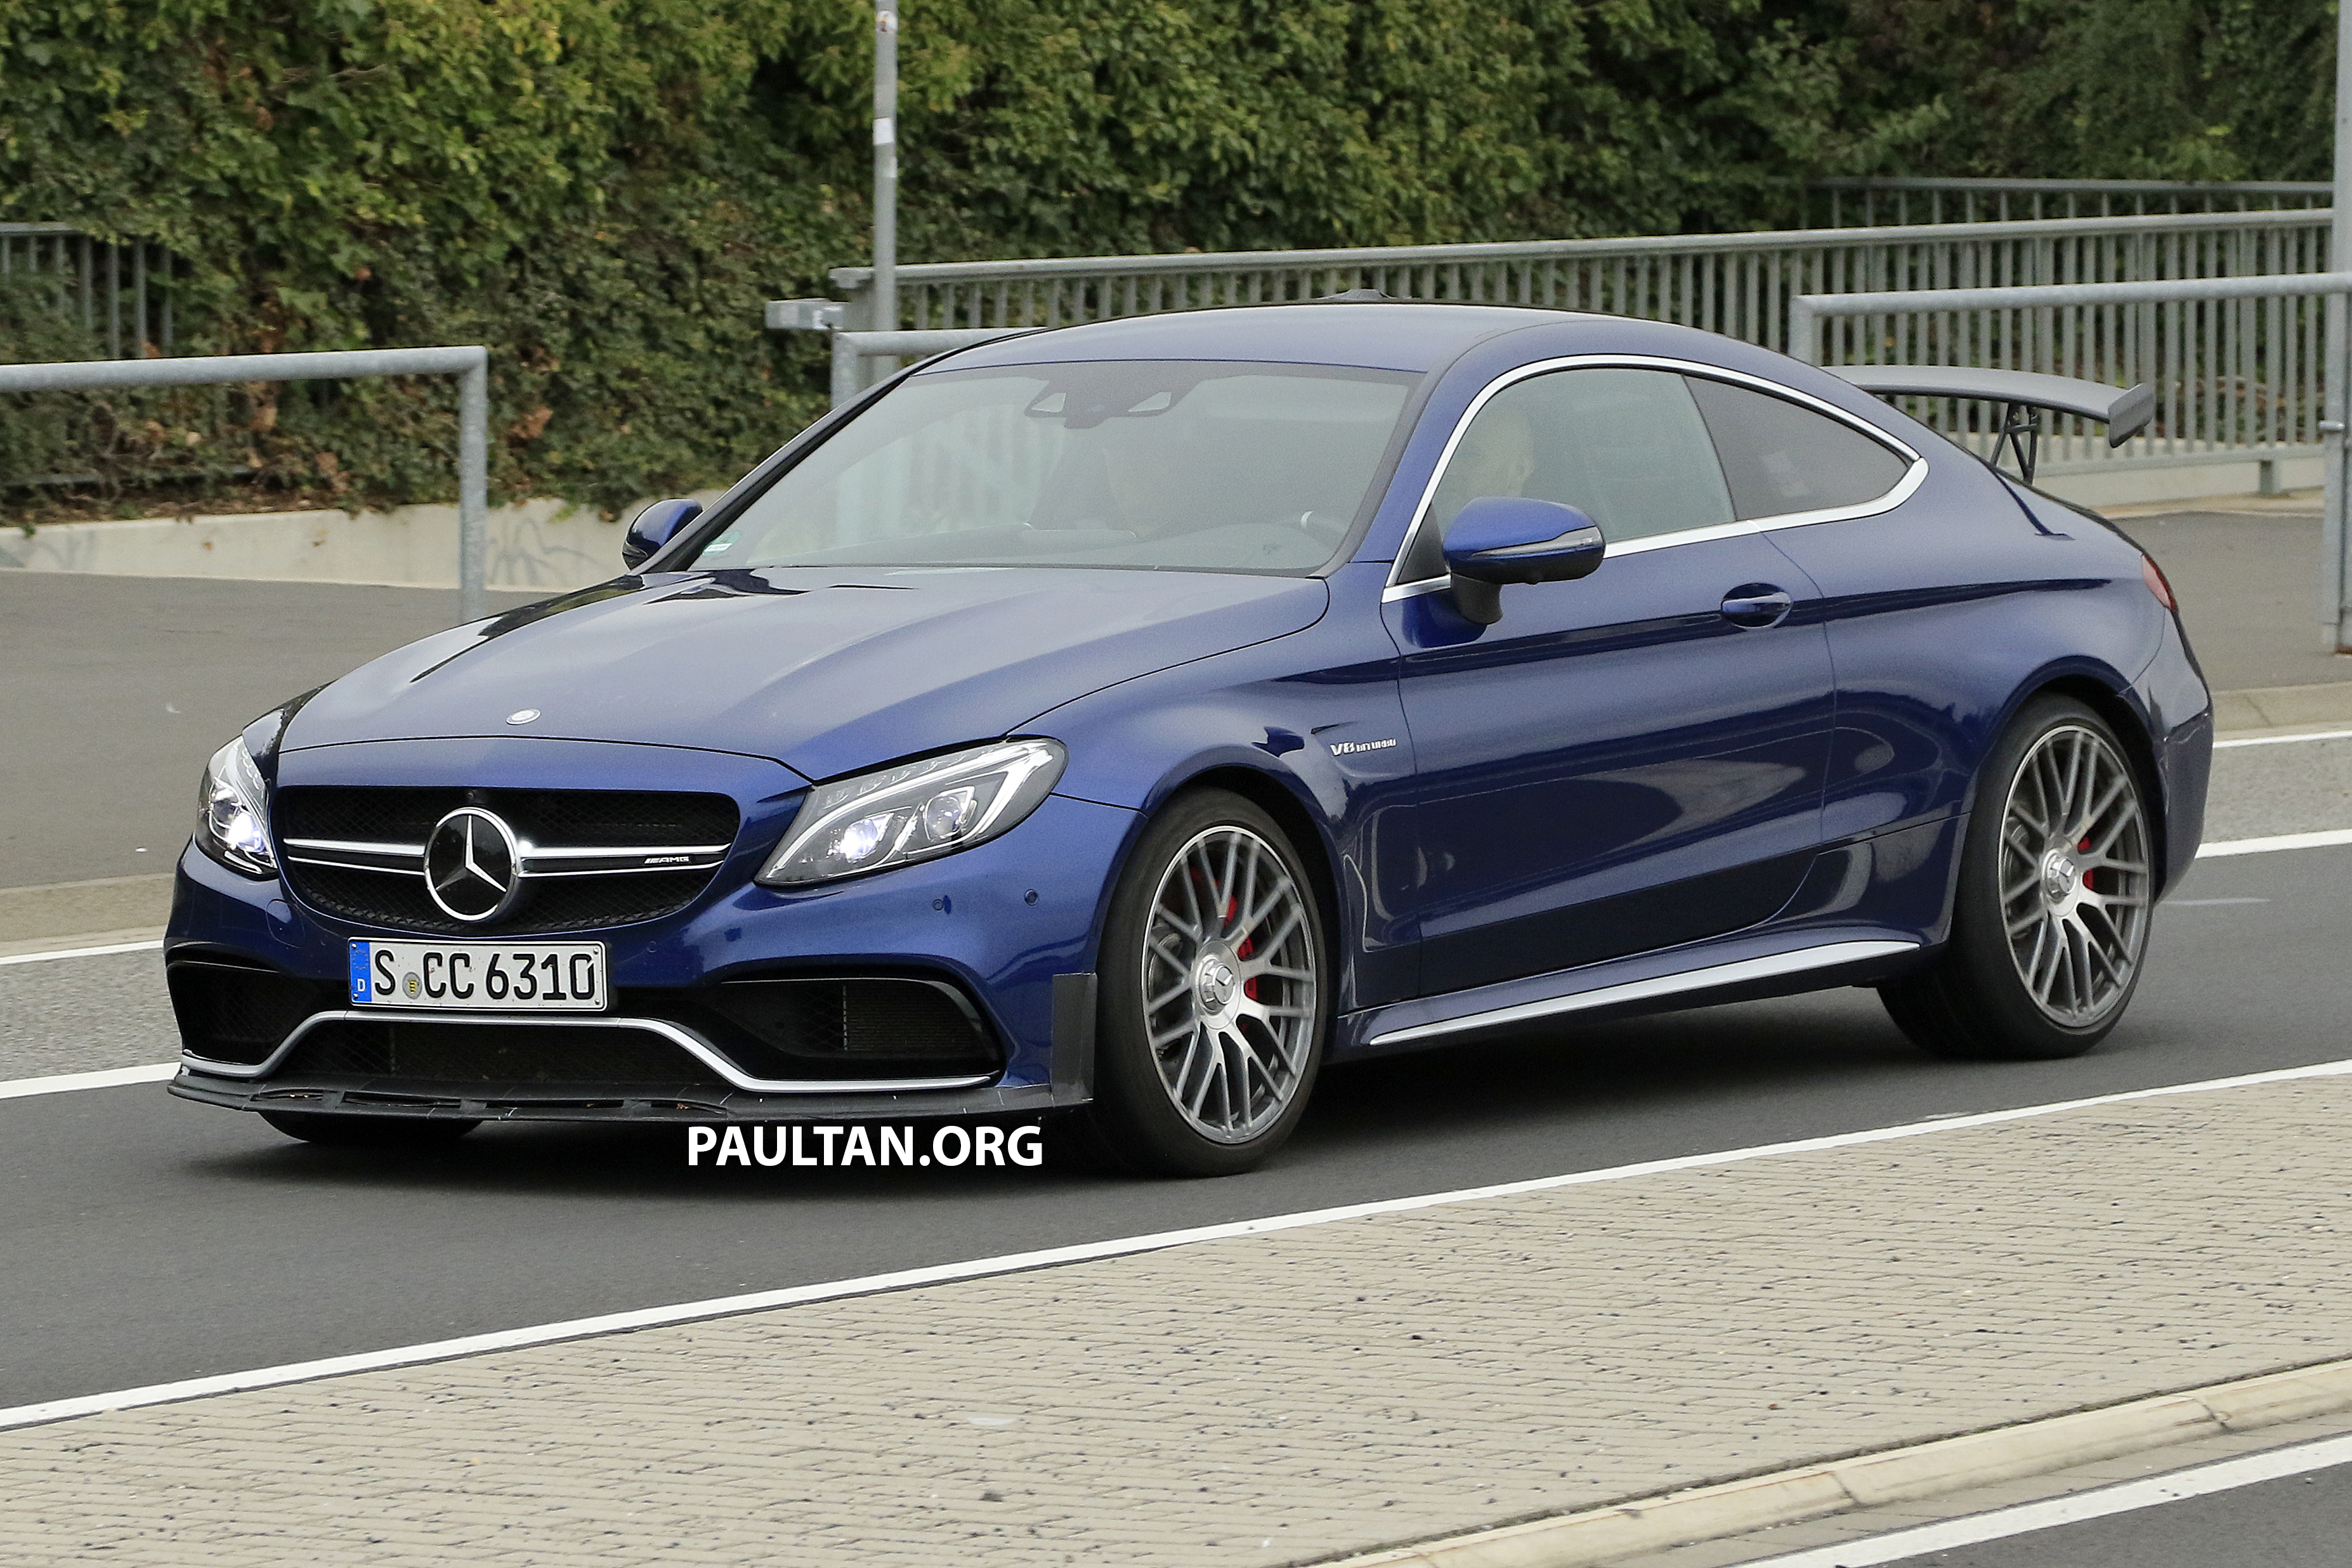 Mercedes C Coupe >> SPYSHOTS: Mercedes-AMG C63 R Coupe spotted Image 561800